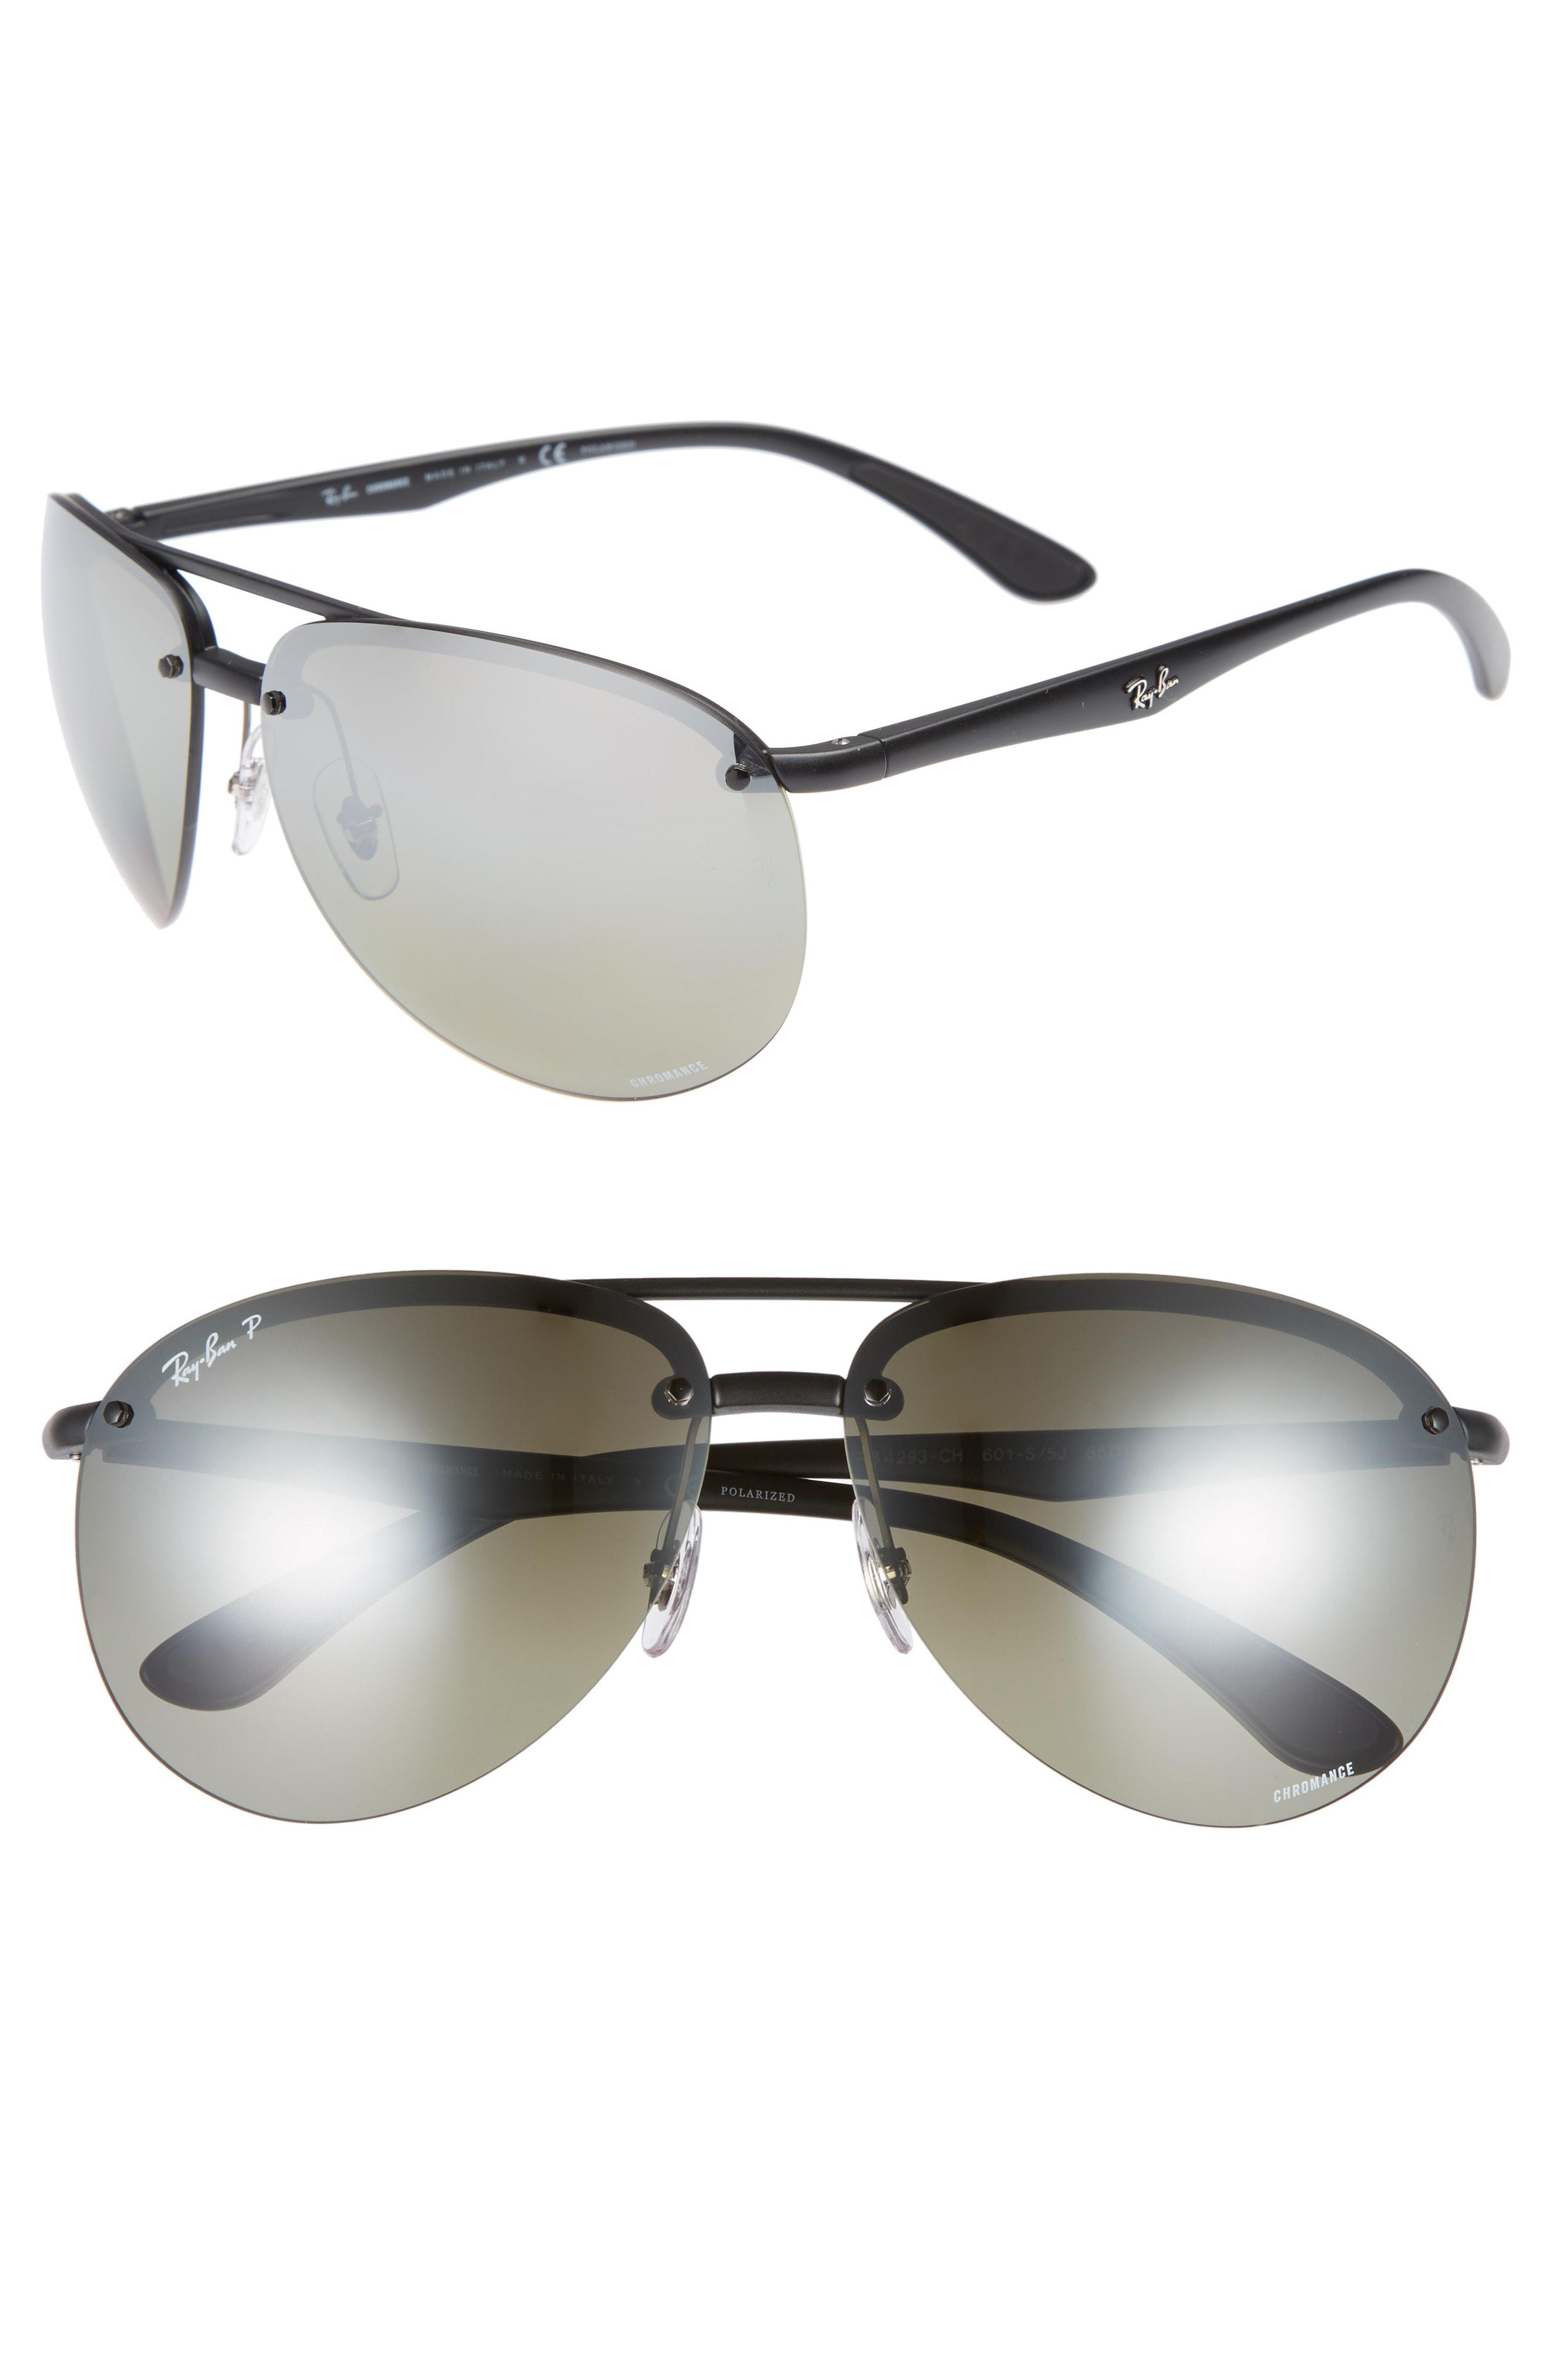 09b07d8779a Gallery. Previously sold at  Nordstrom · Men s Ray Ban General Men s Cat  Eye Sunglasses ...